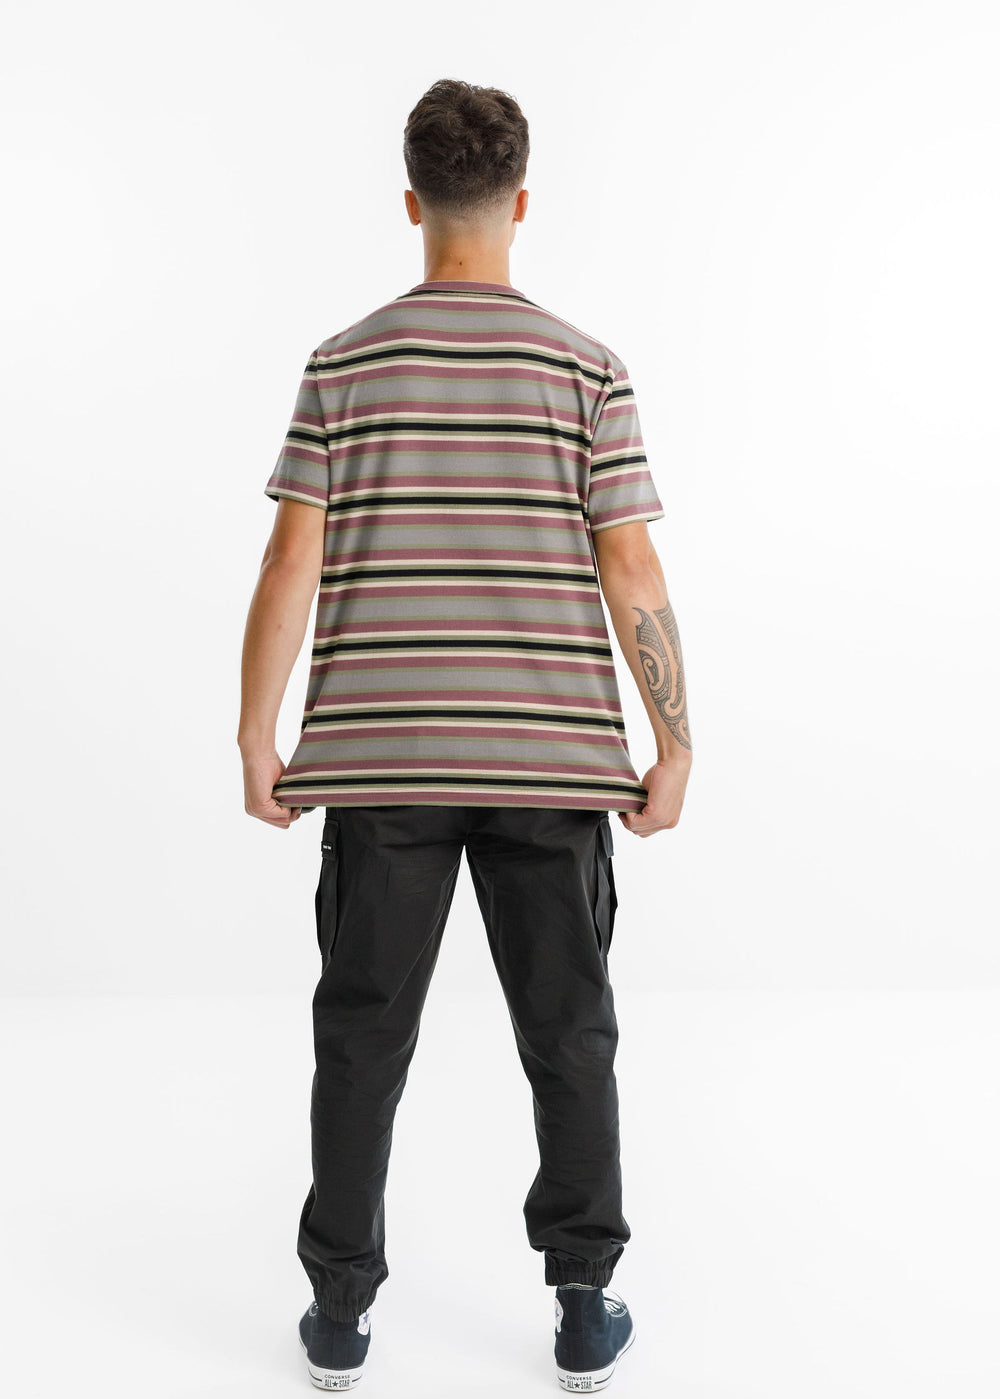 MAX POCKET TEE - Mossey Stripe